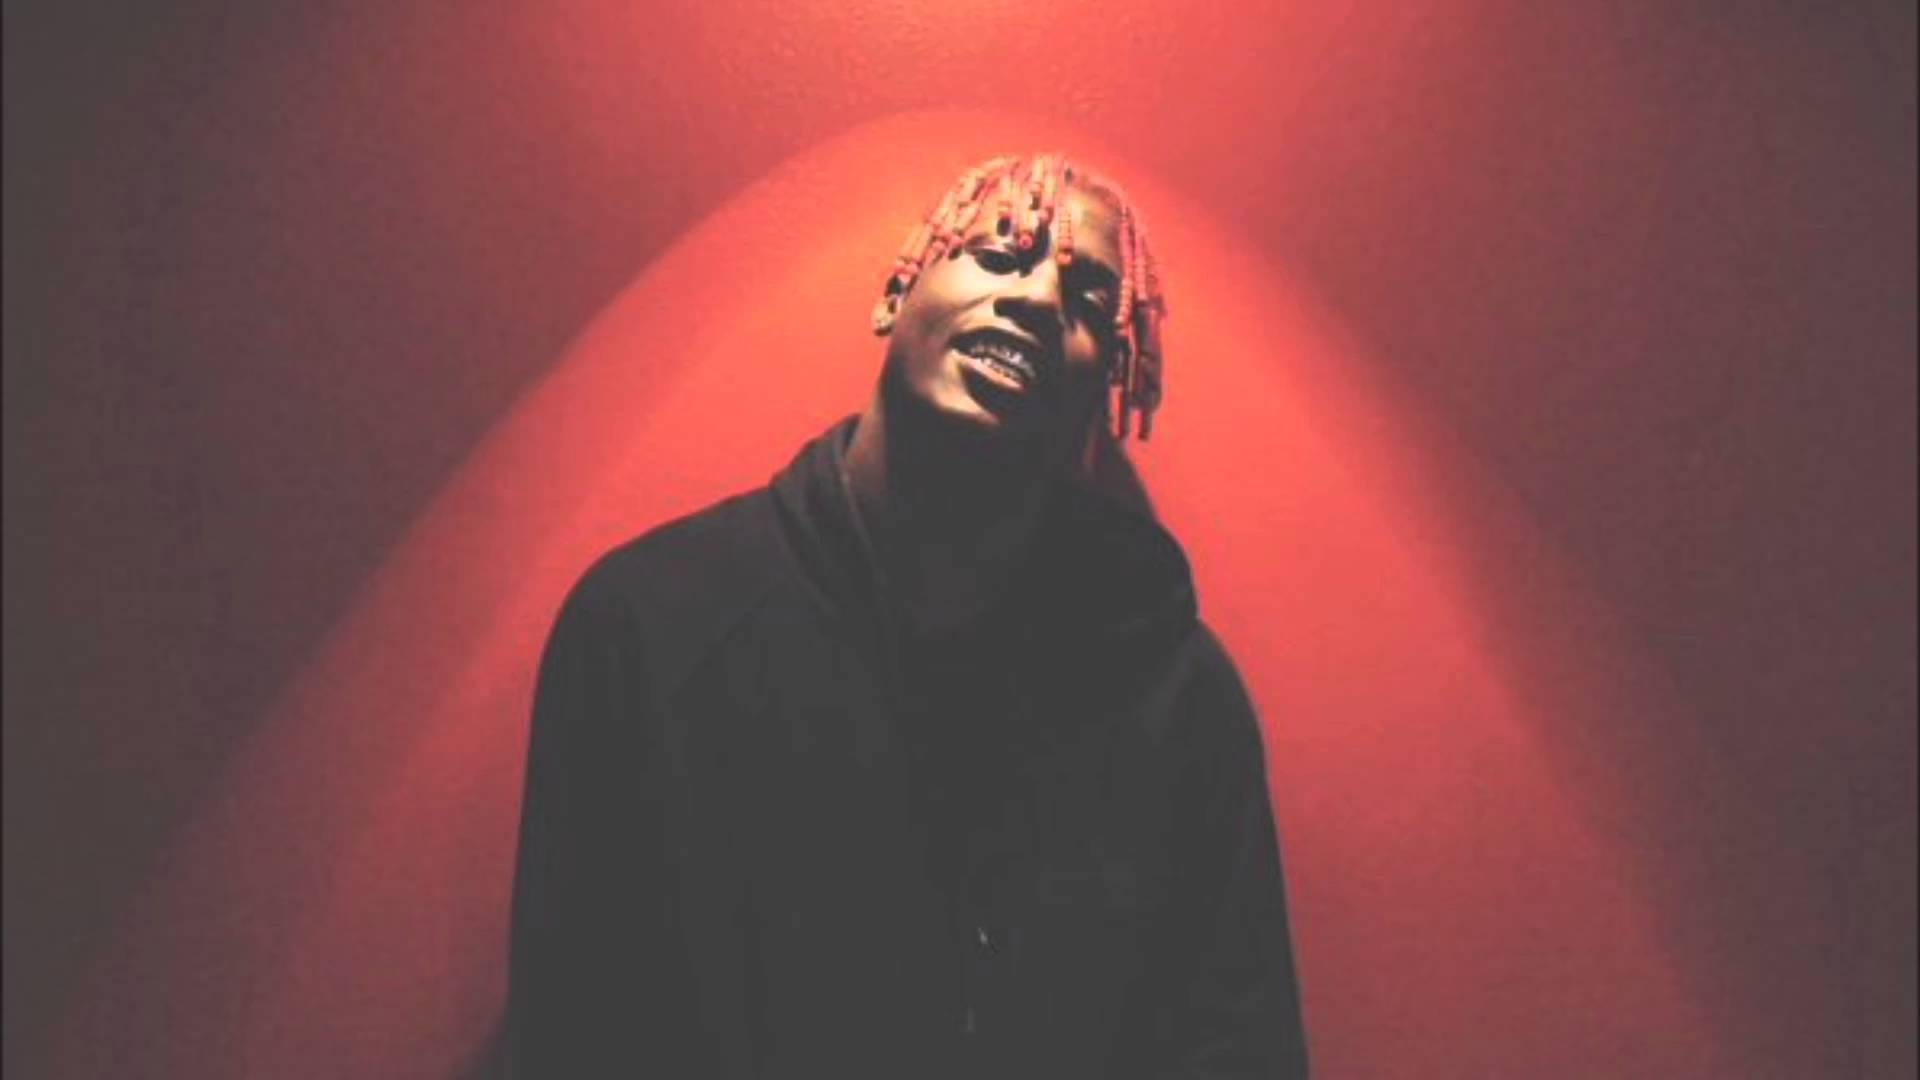 Lil Yachty 1920X1080 Wallpapers - Top